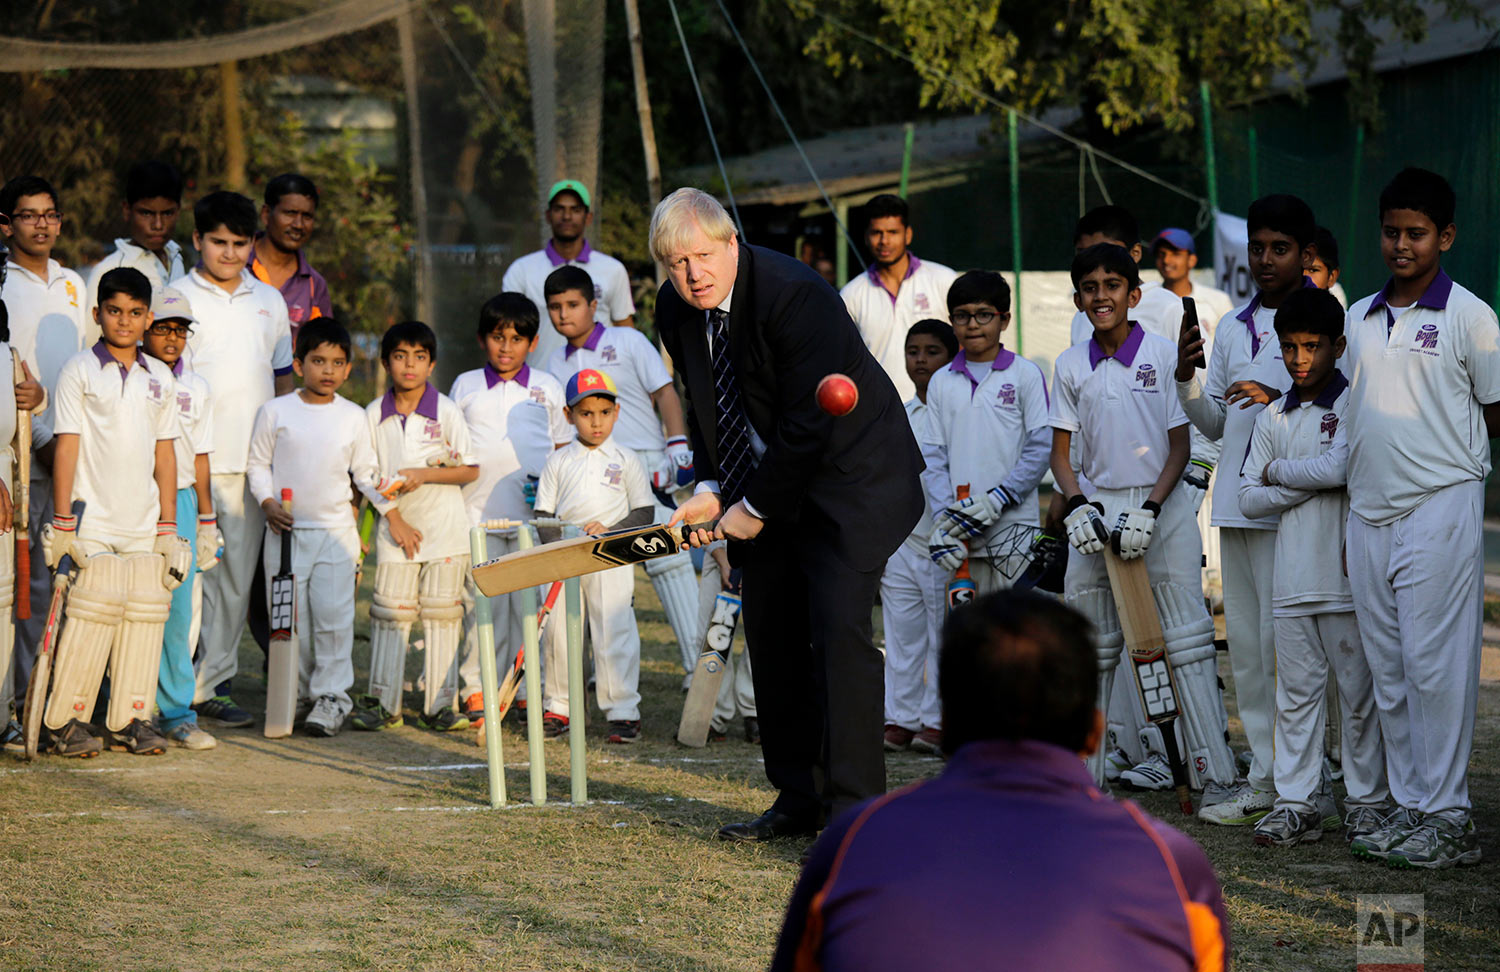 British Foreign Secretary Boris Johnson plays cricket at a cricket academy in Kolkata, India, Thursday, Jan. 19, 2017. Johnson, who is in India on a two-day visit, said Wednesday that his country would like to forge a free trade agreement with India as it prepares to leave the European Union. (AP Photo/Bikas Das)